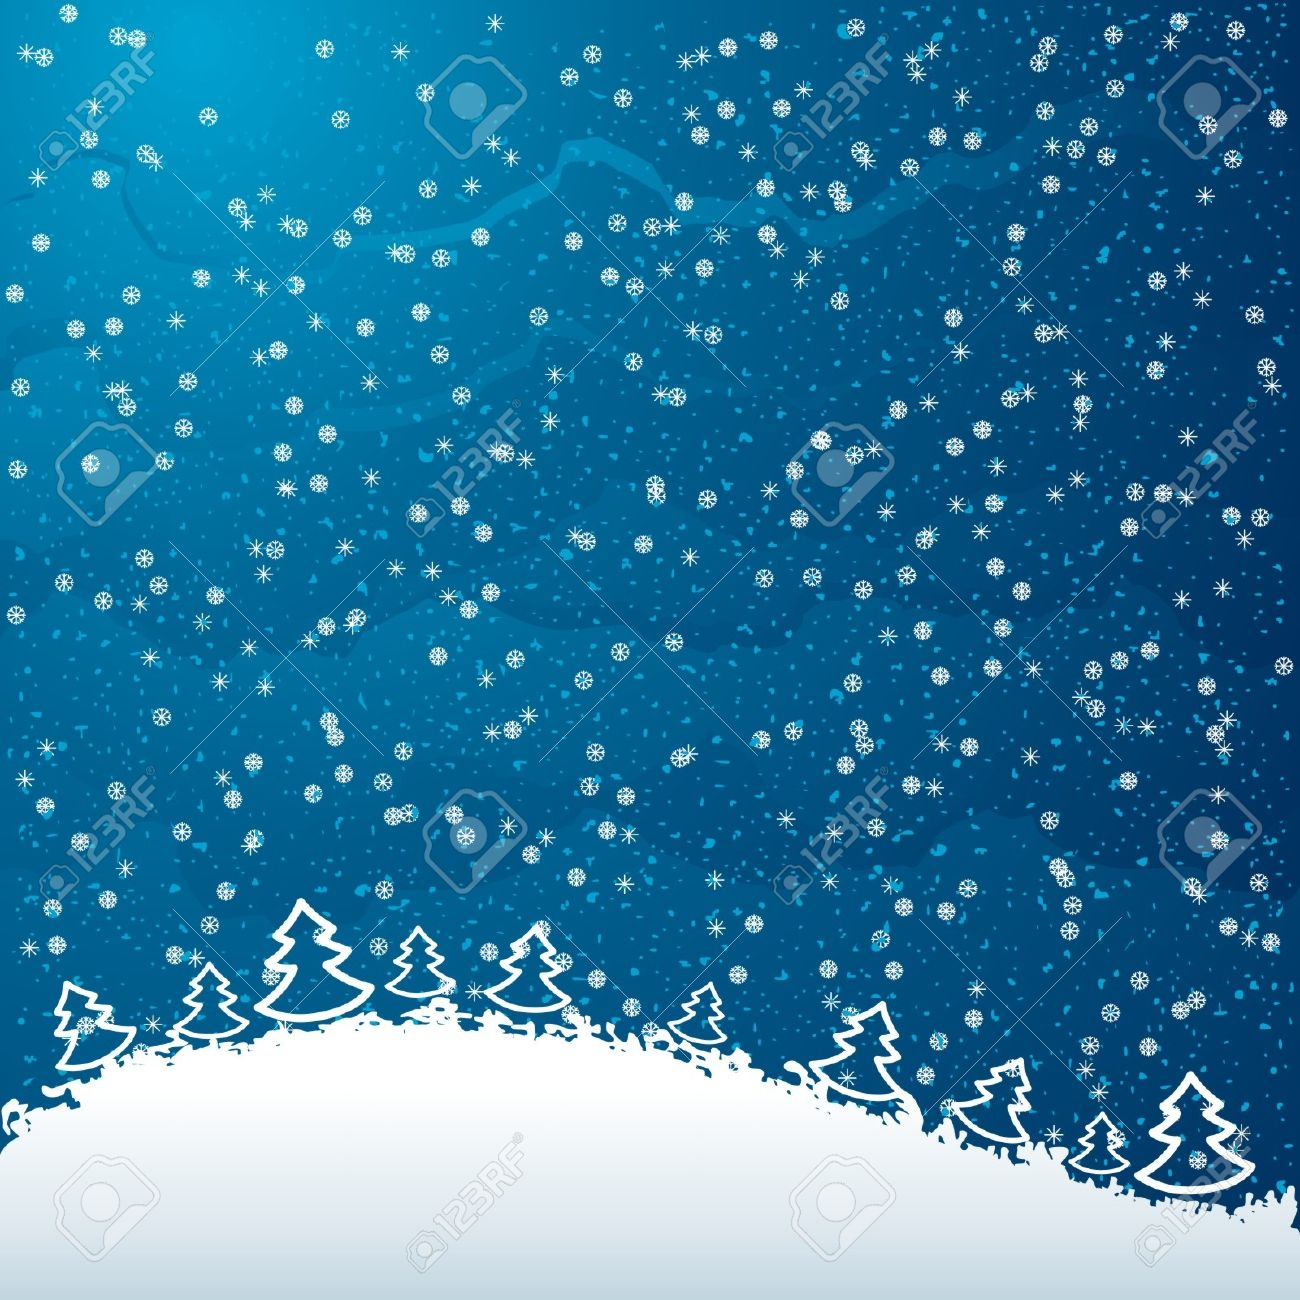 Just realistic beautiful snow on a blue background with Christmas trees Stock Vector - 16163385